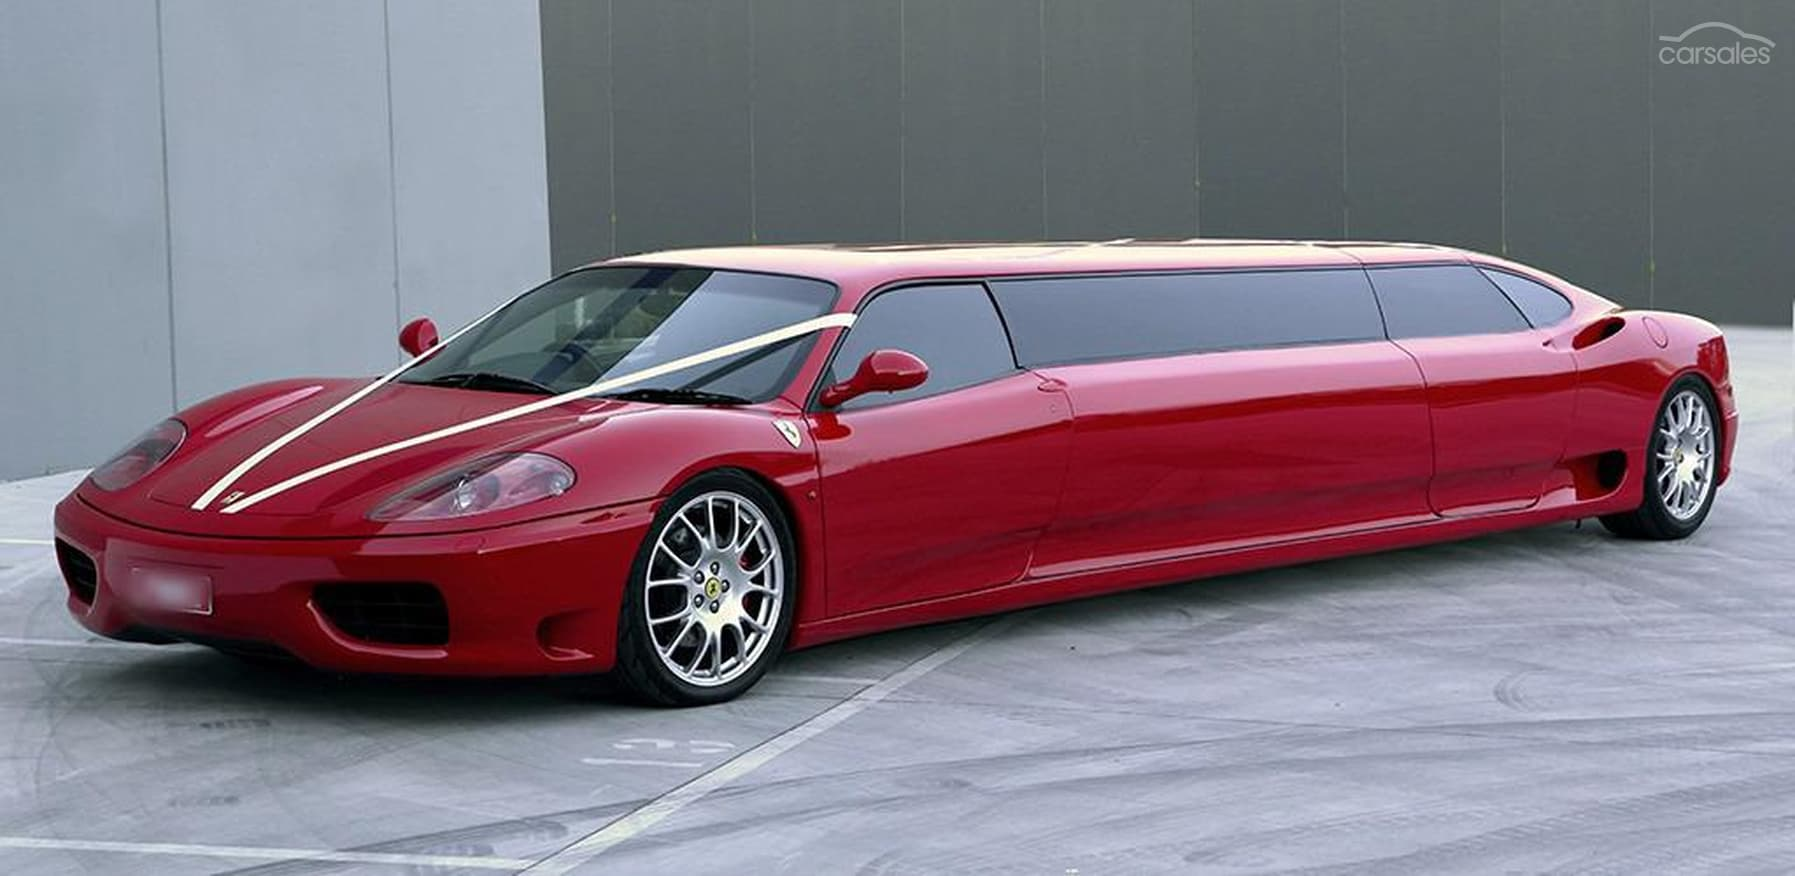 This Crazy Ferrari 360 Modena Limo Is Up For Sale In Australia